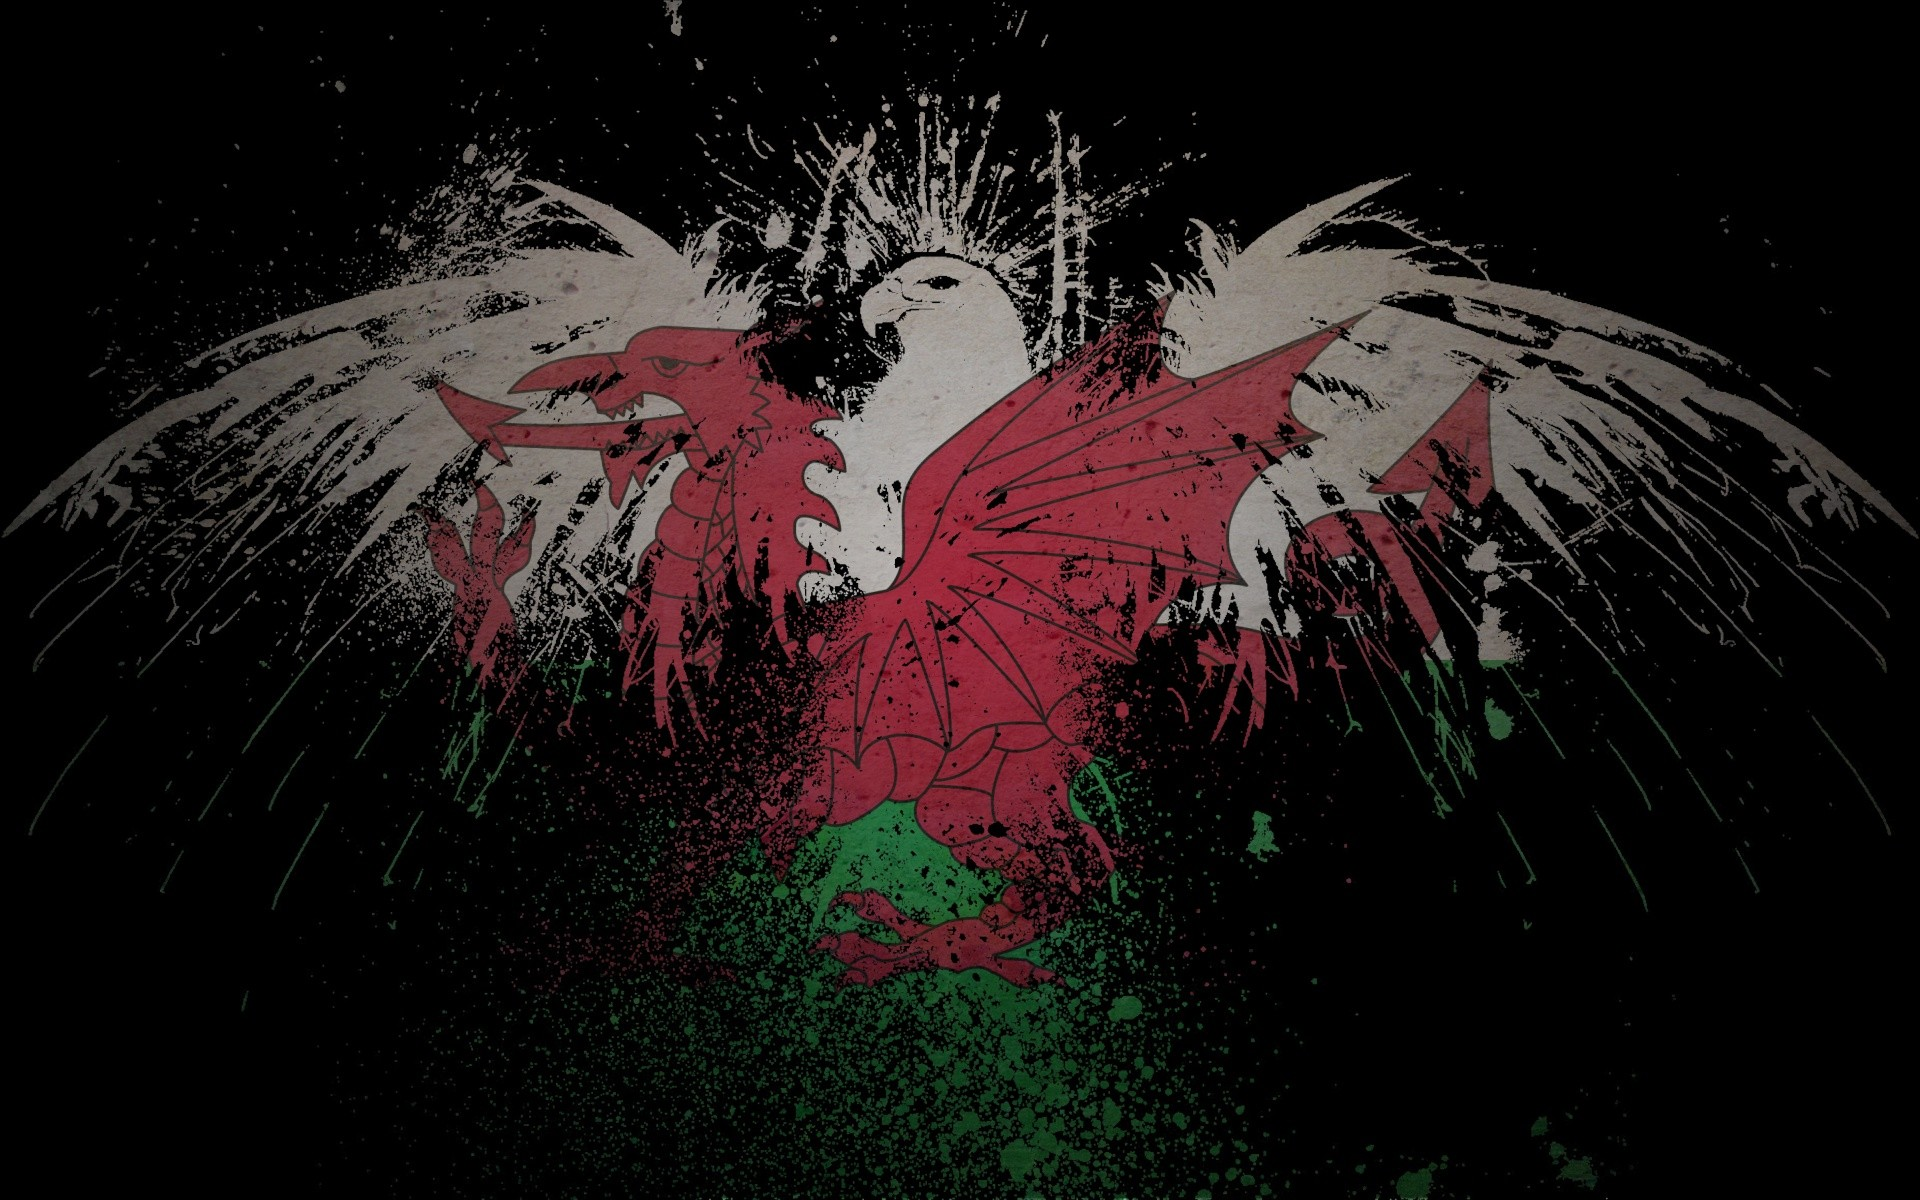 1920x1200 eagle flag wallpaper  id 20890 wallpapervortex com; welsh flag  wallpaper wallpapersafari ...